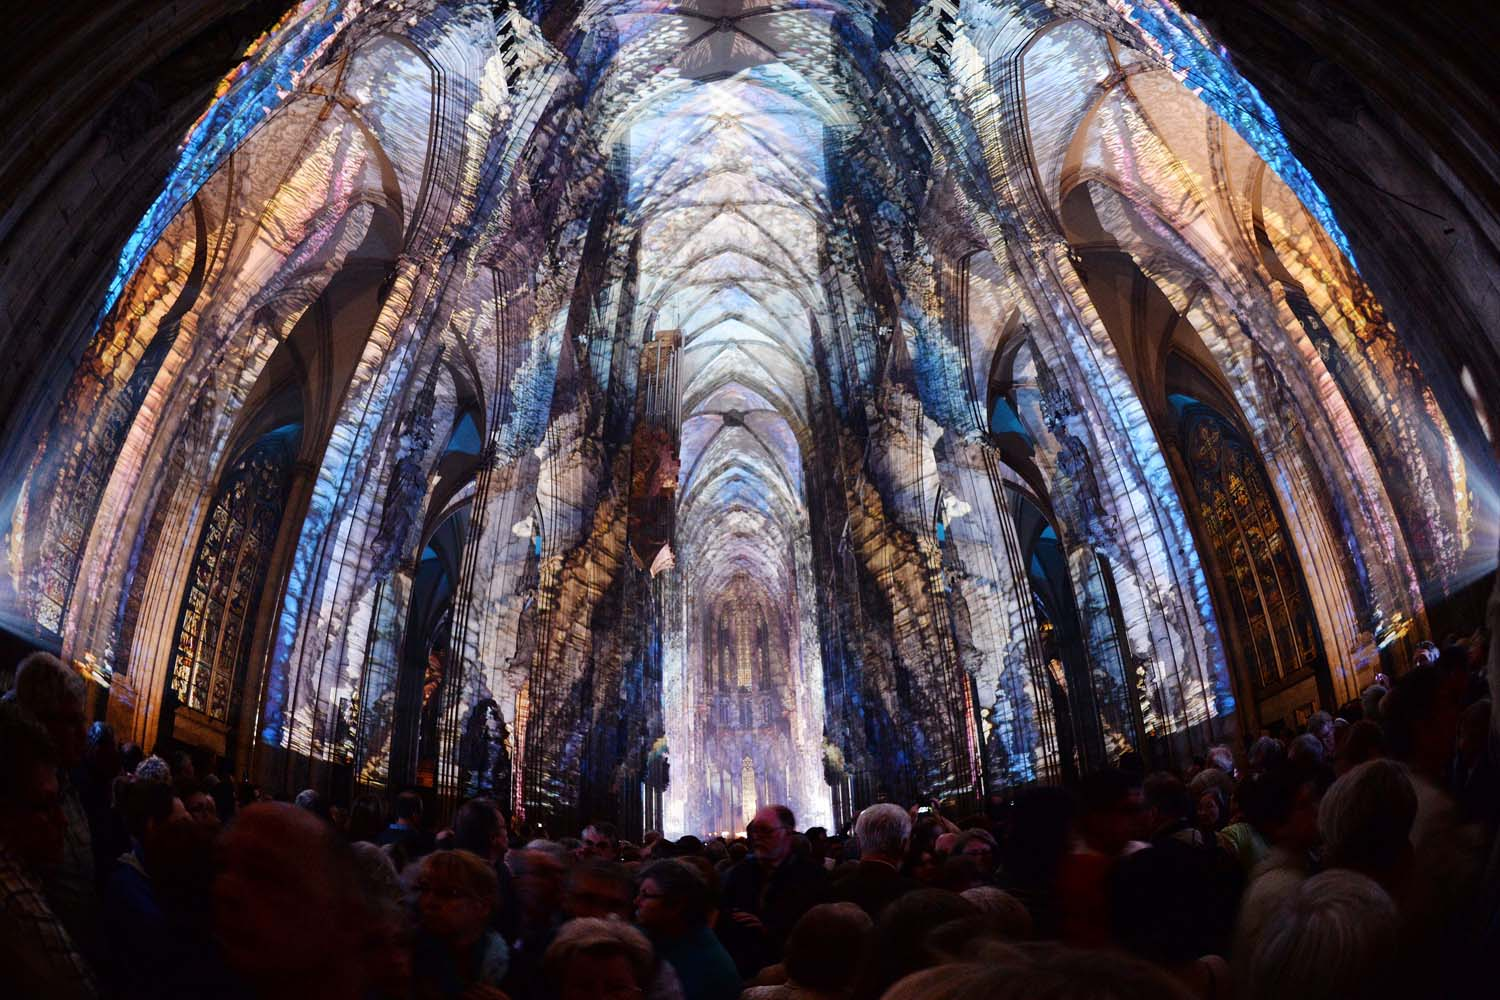 June 5, 2013. People watch a light installation titled  Lux Eucharistica,  inside the Cologne cathedral on the sidelines of an Eucharistical Congress in Cologne, western Germany.